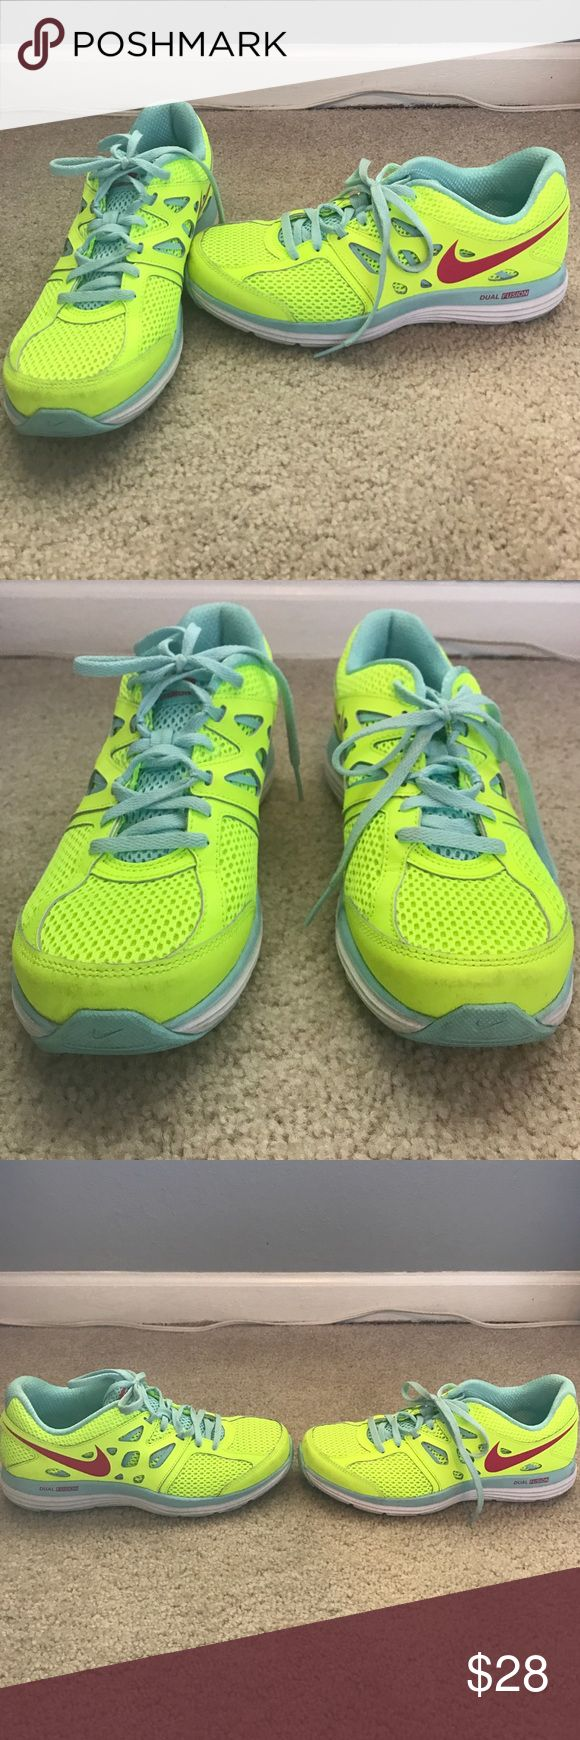 Nike Dual Fusion Shoes. Size 7.5 Nike Dual Fusion shoes. Size 7.5. Only worn a few times. Colors are bright/neon yellow, robins egg blue and pink. Nike Shoes Athletic Shoes